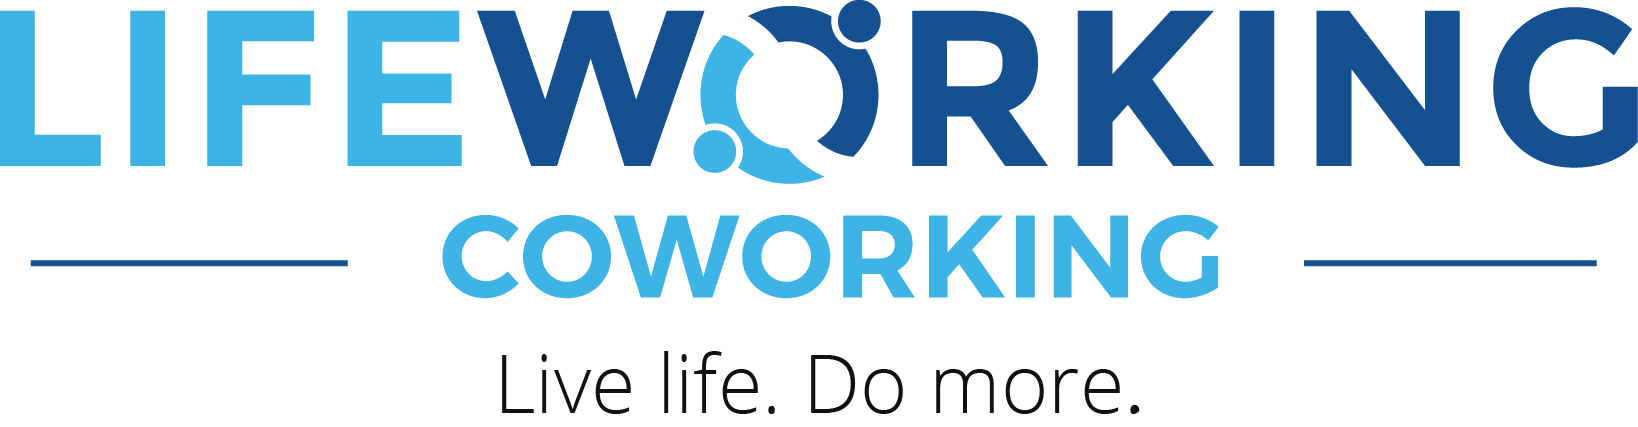 LifeWorking-06-06-17-Logo.png